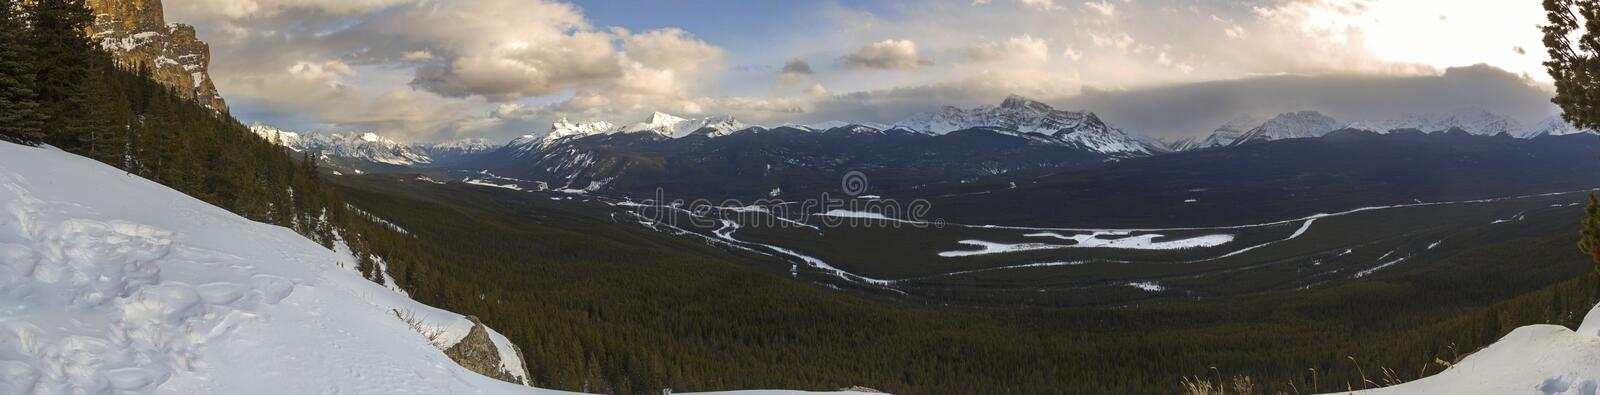 Bow River Valley Panoramic Landscape Banff National Park Canadian Rockies royalty free stock photo